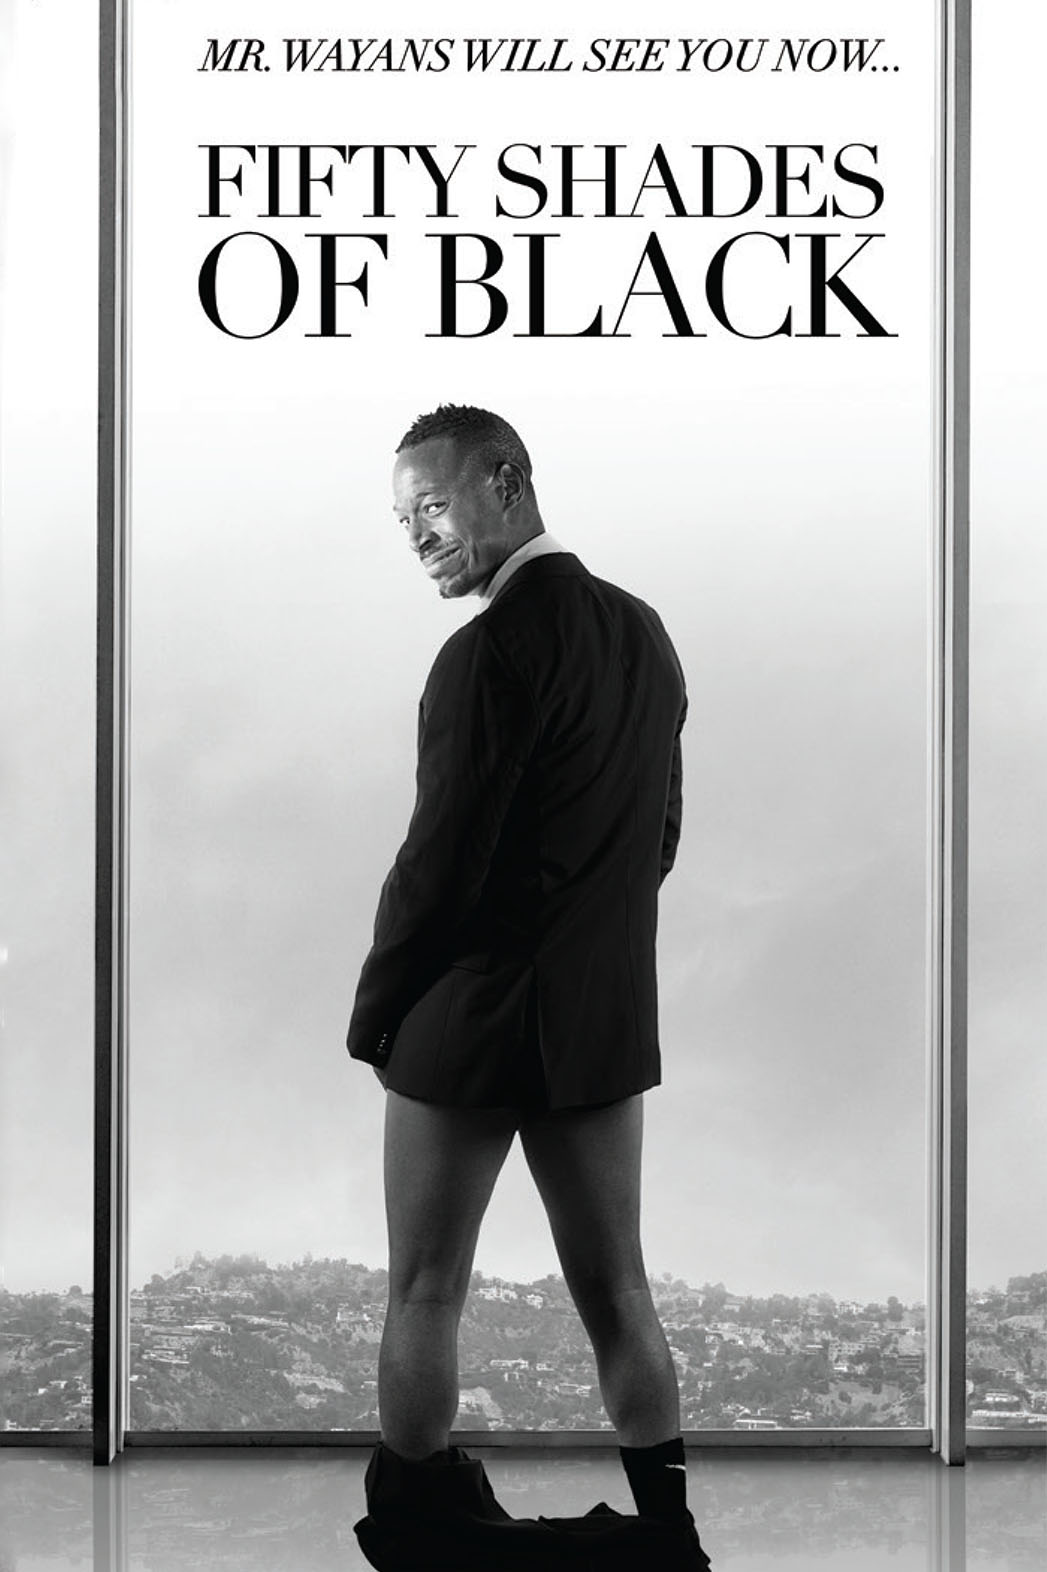 marlon wayans talks shades of black i like sex i like marlon wayans talks 50 shades of black i like sex i like comedy and this combines both it s an homage to the original indiewire